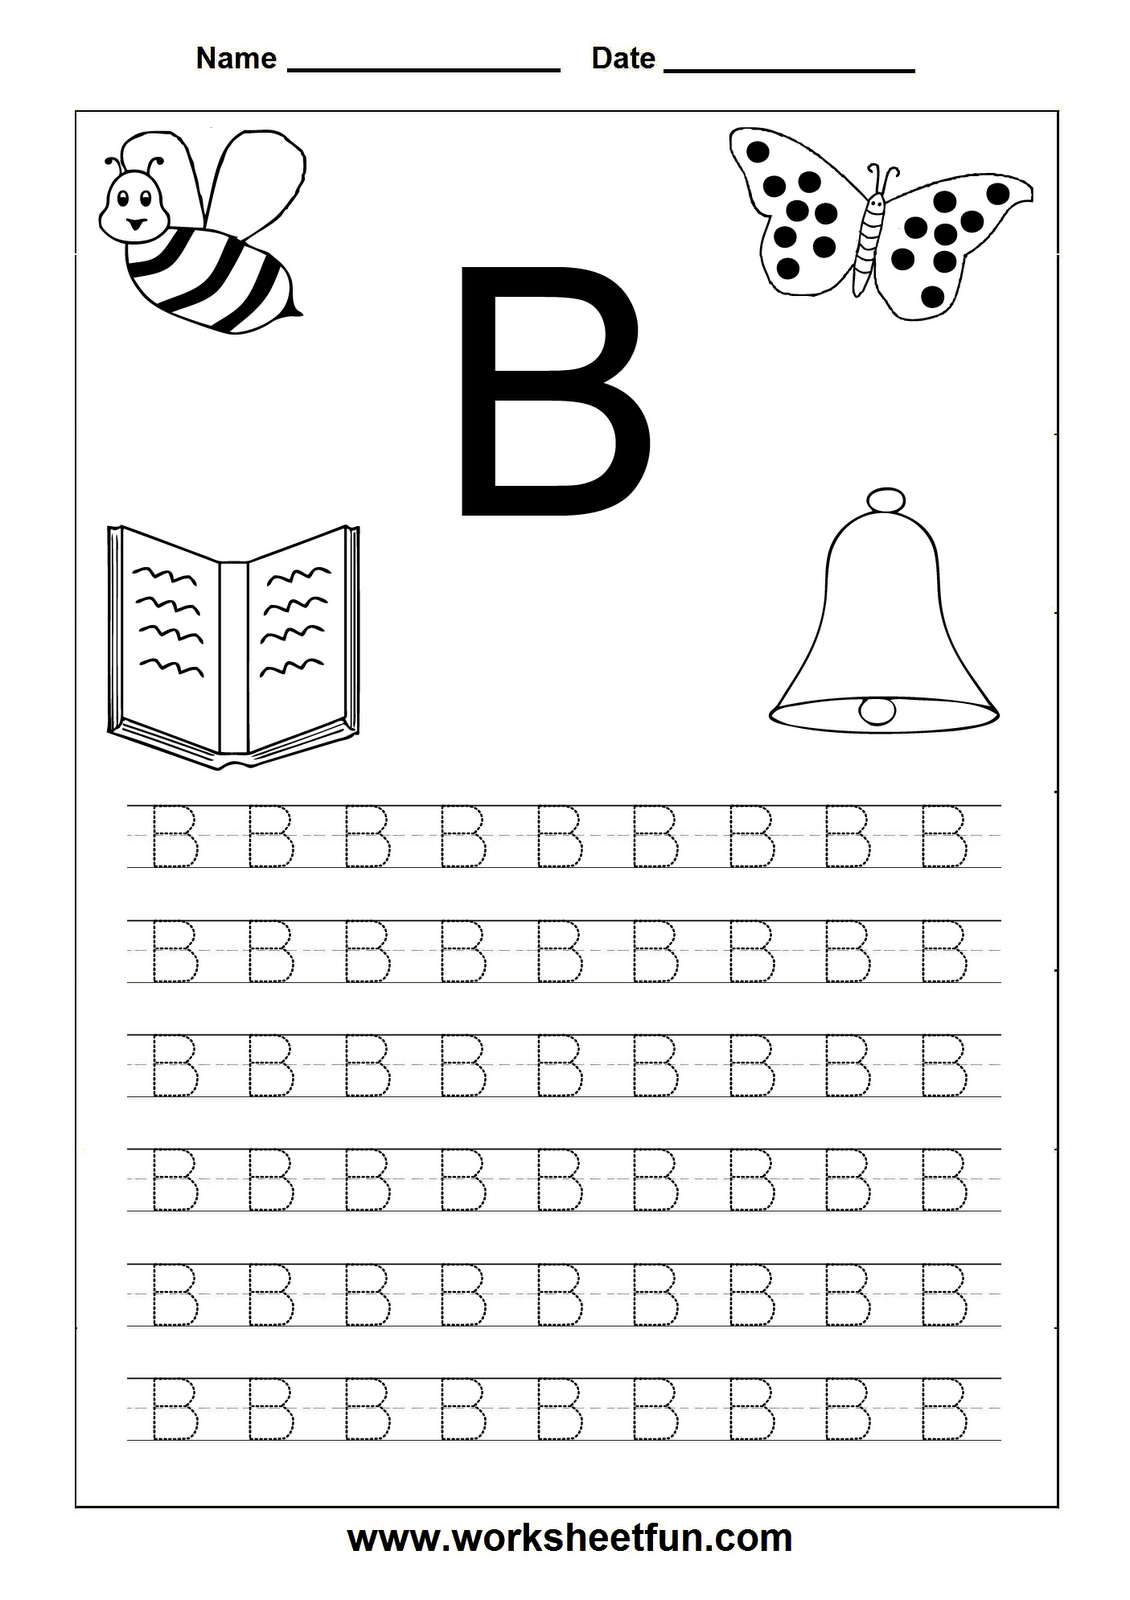 math worksheet : 1000 images about kindergarten worksheets on pinterest  : Abc Worksheets For Kindergarten Free